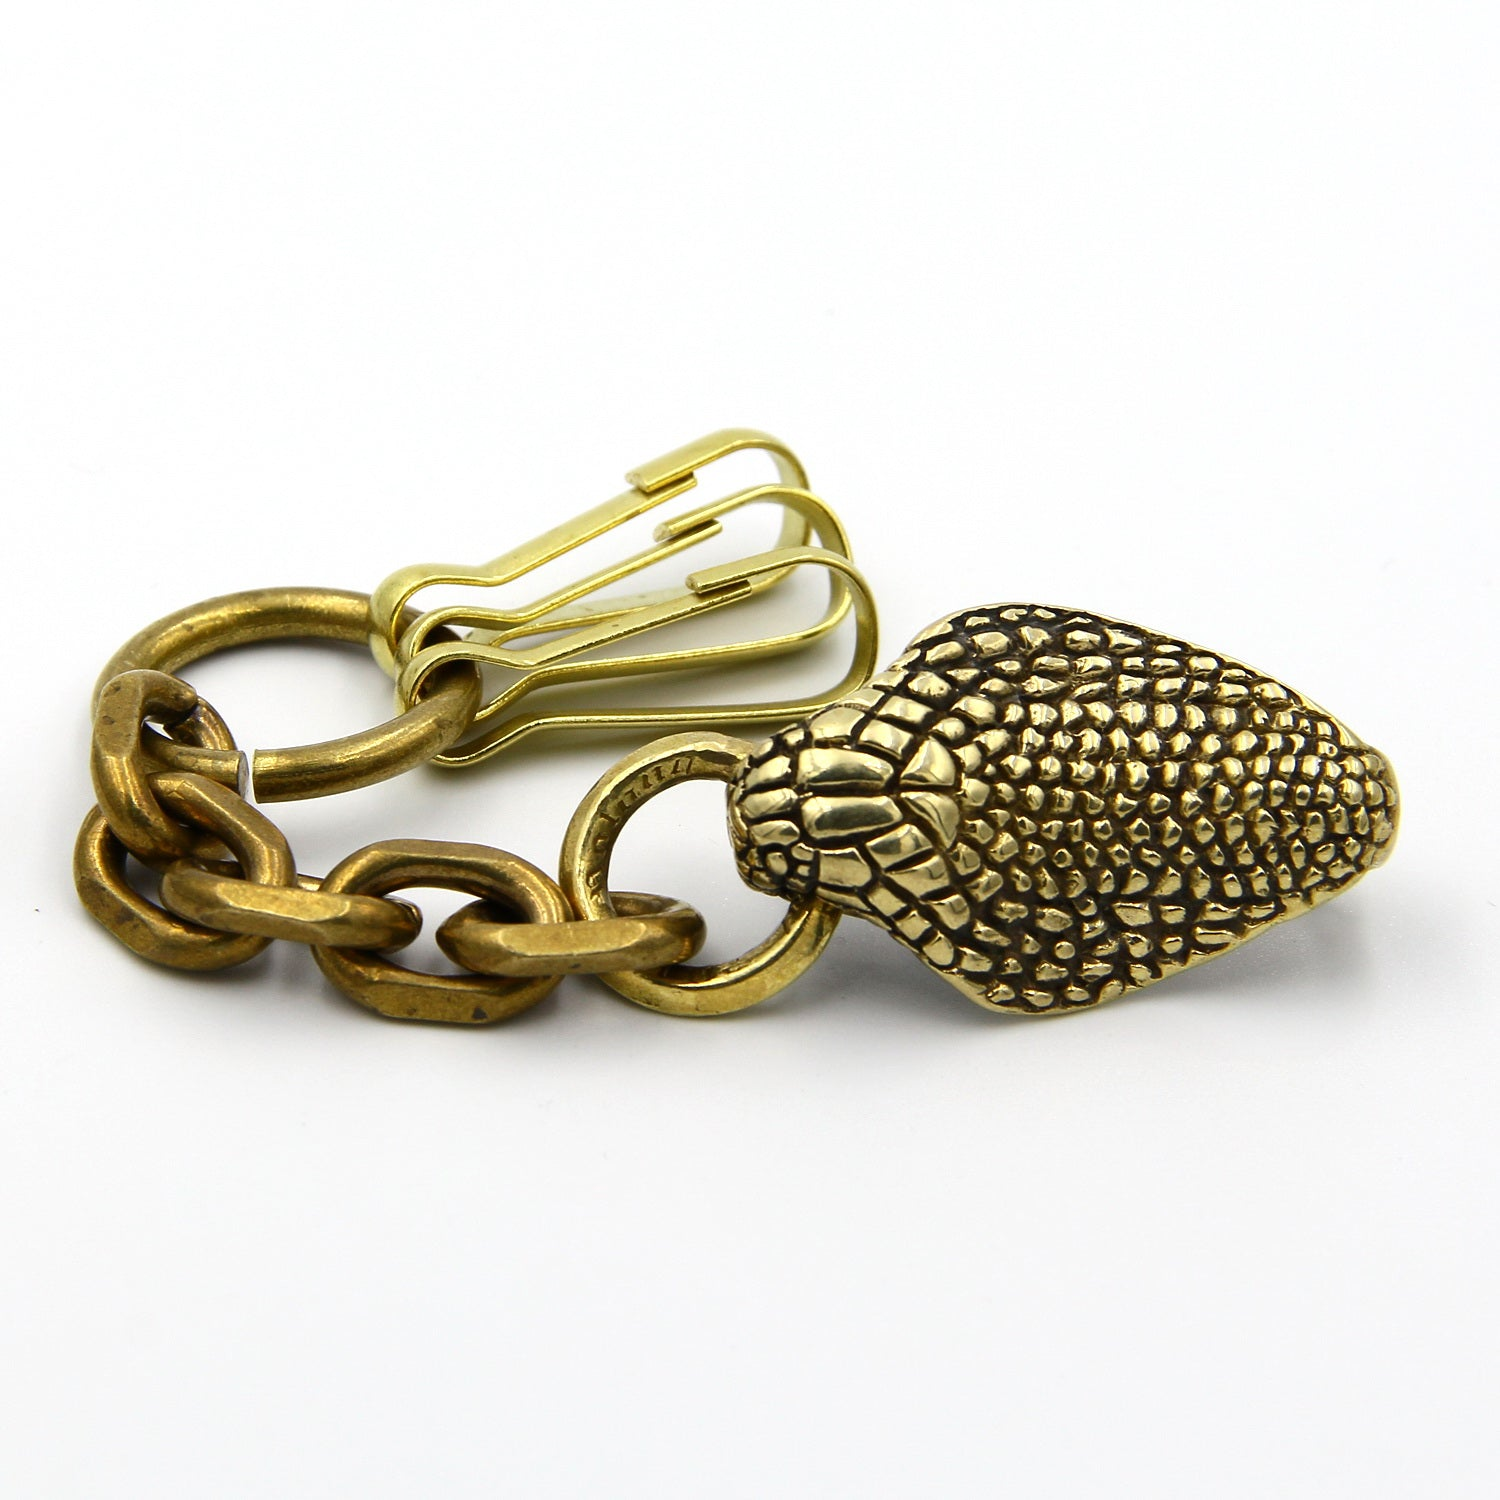 Handcrafted King Cobra Keychain Manager Exclusive Design - Metal Field